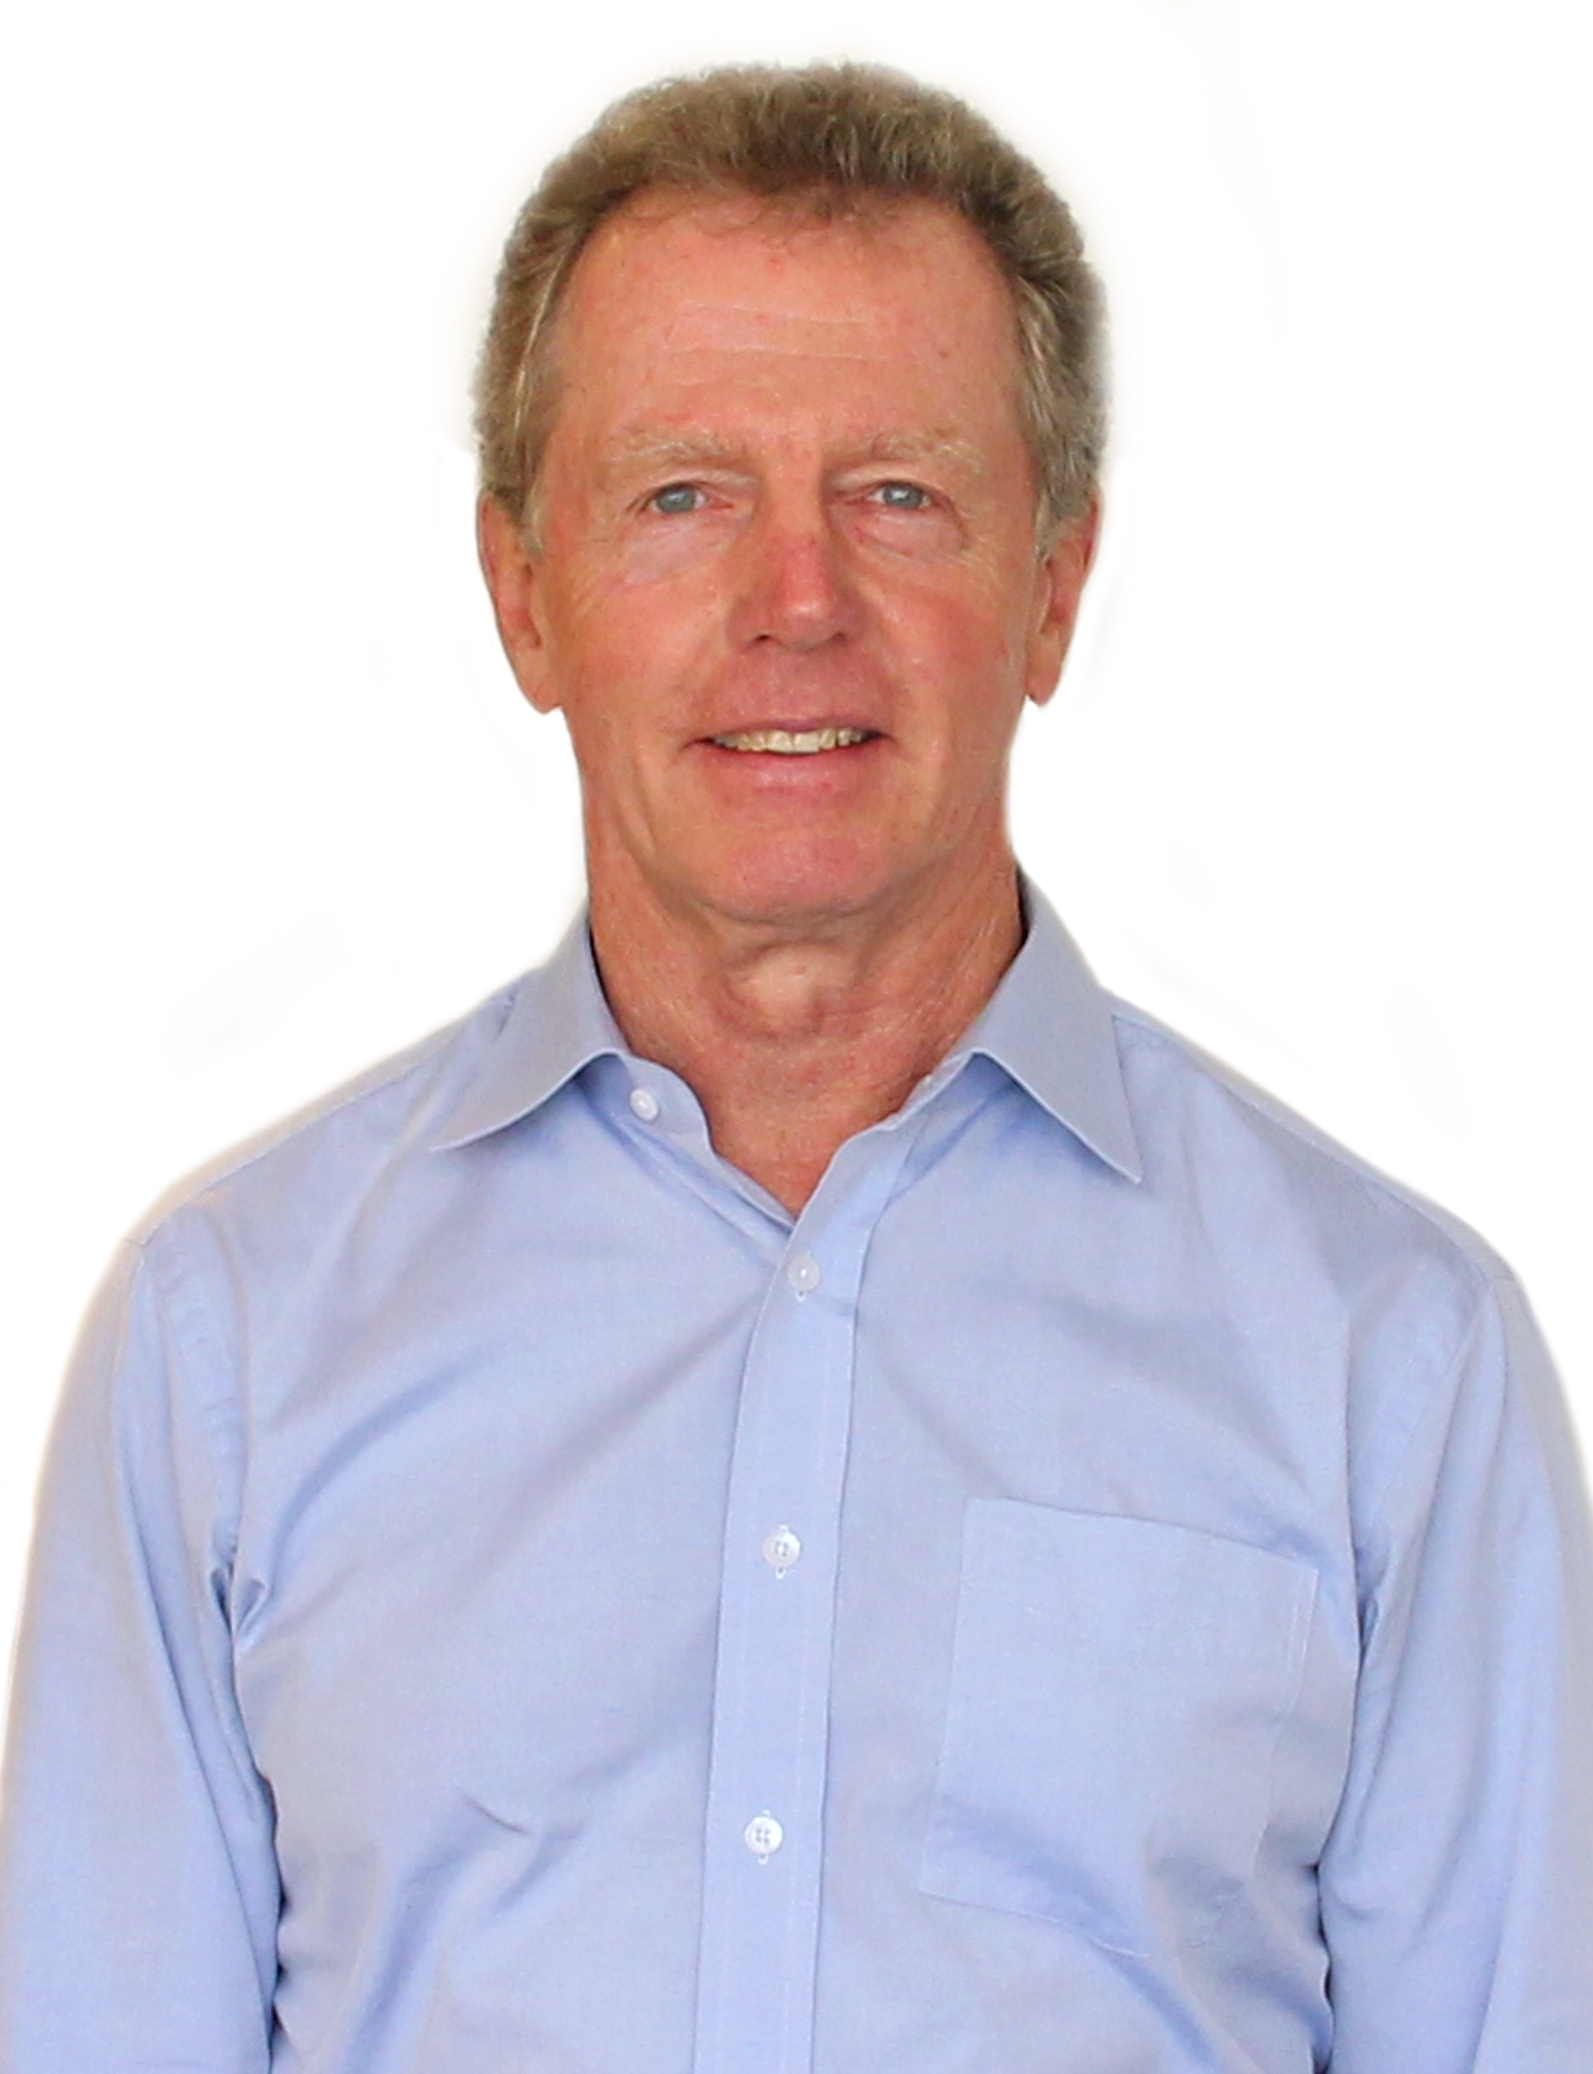 Glenn Barrett, Chairman and CEO, OrthoLite